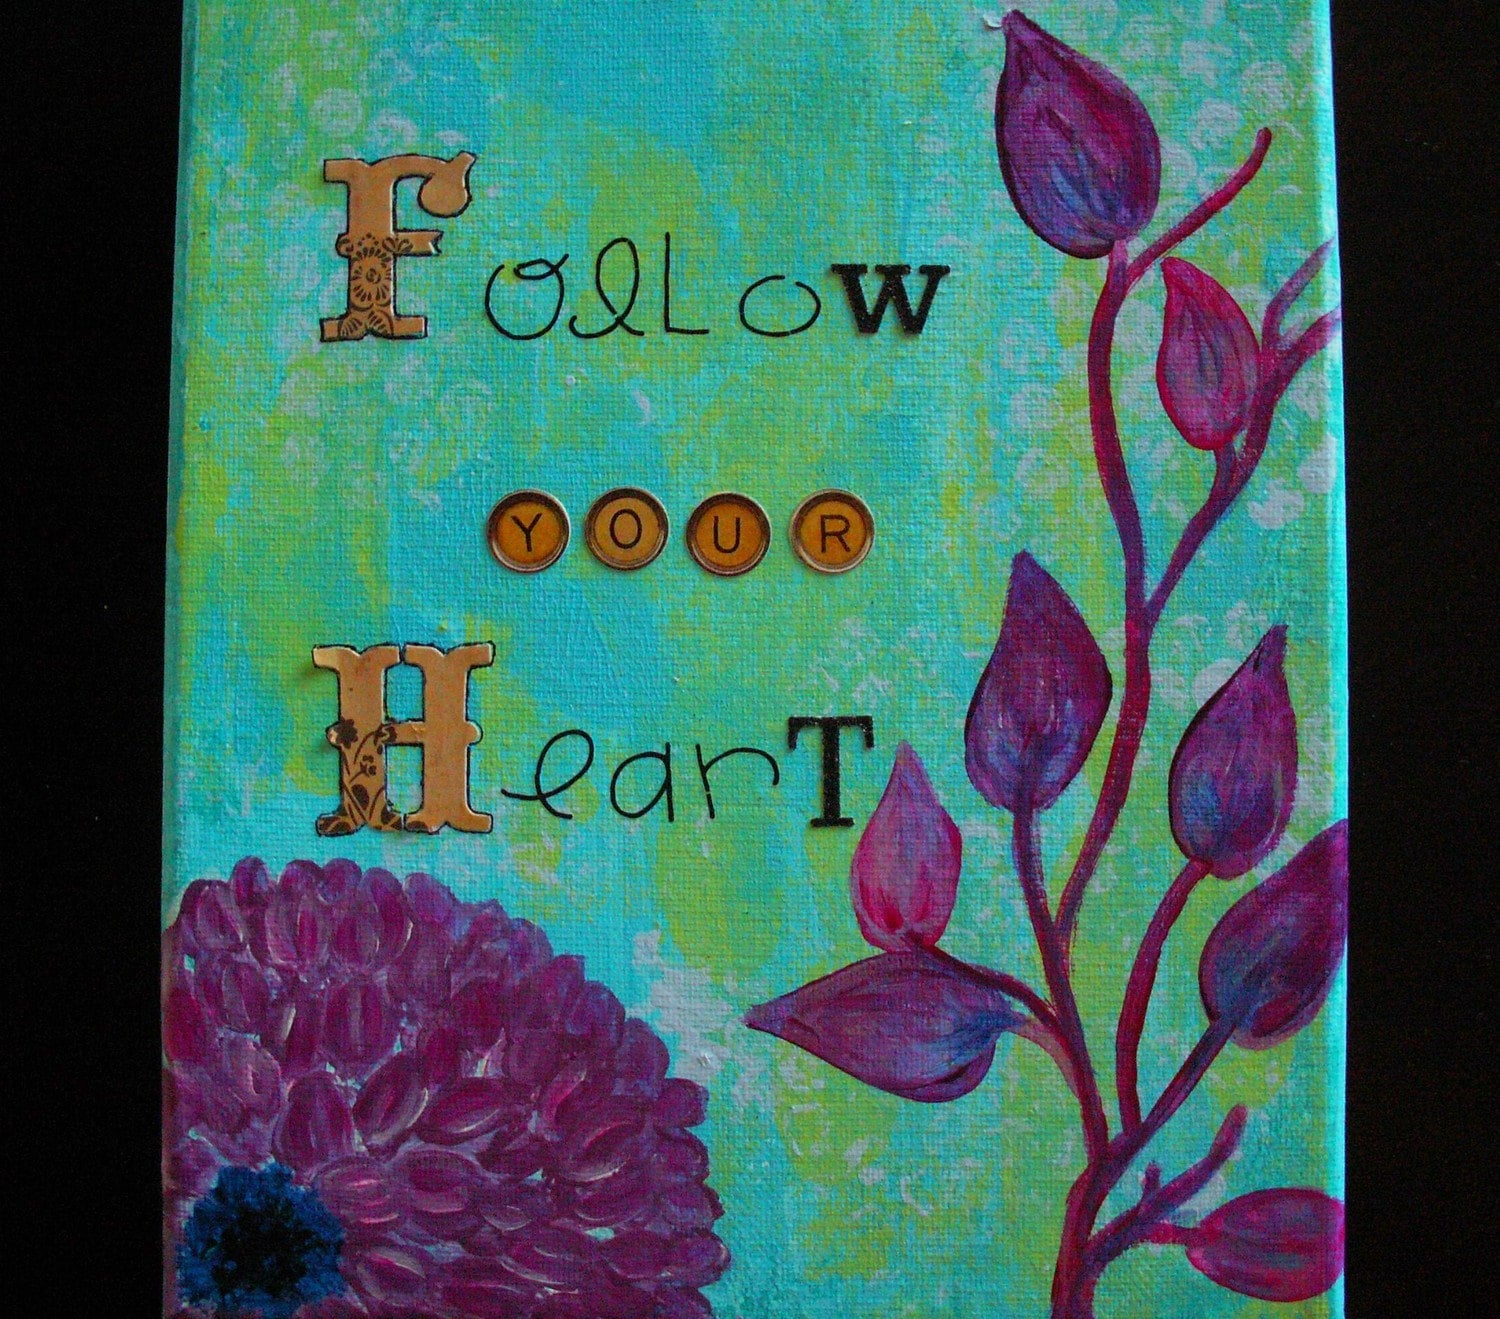 Follow your Heart - Original Painting 8x10 Canvas